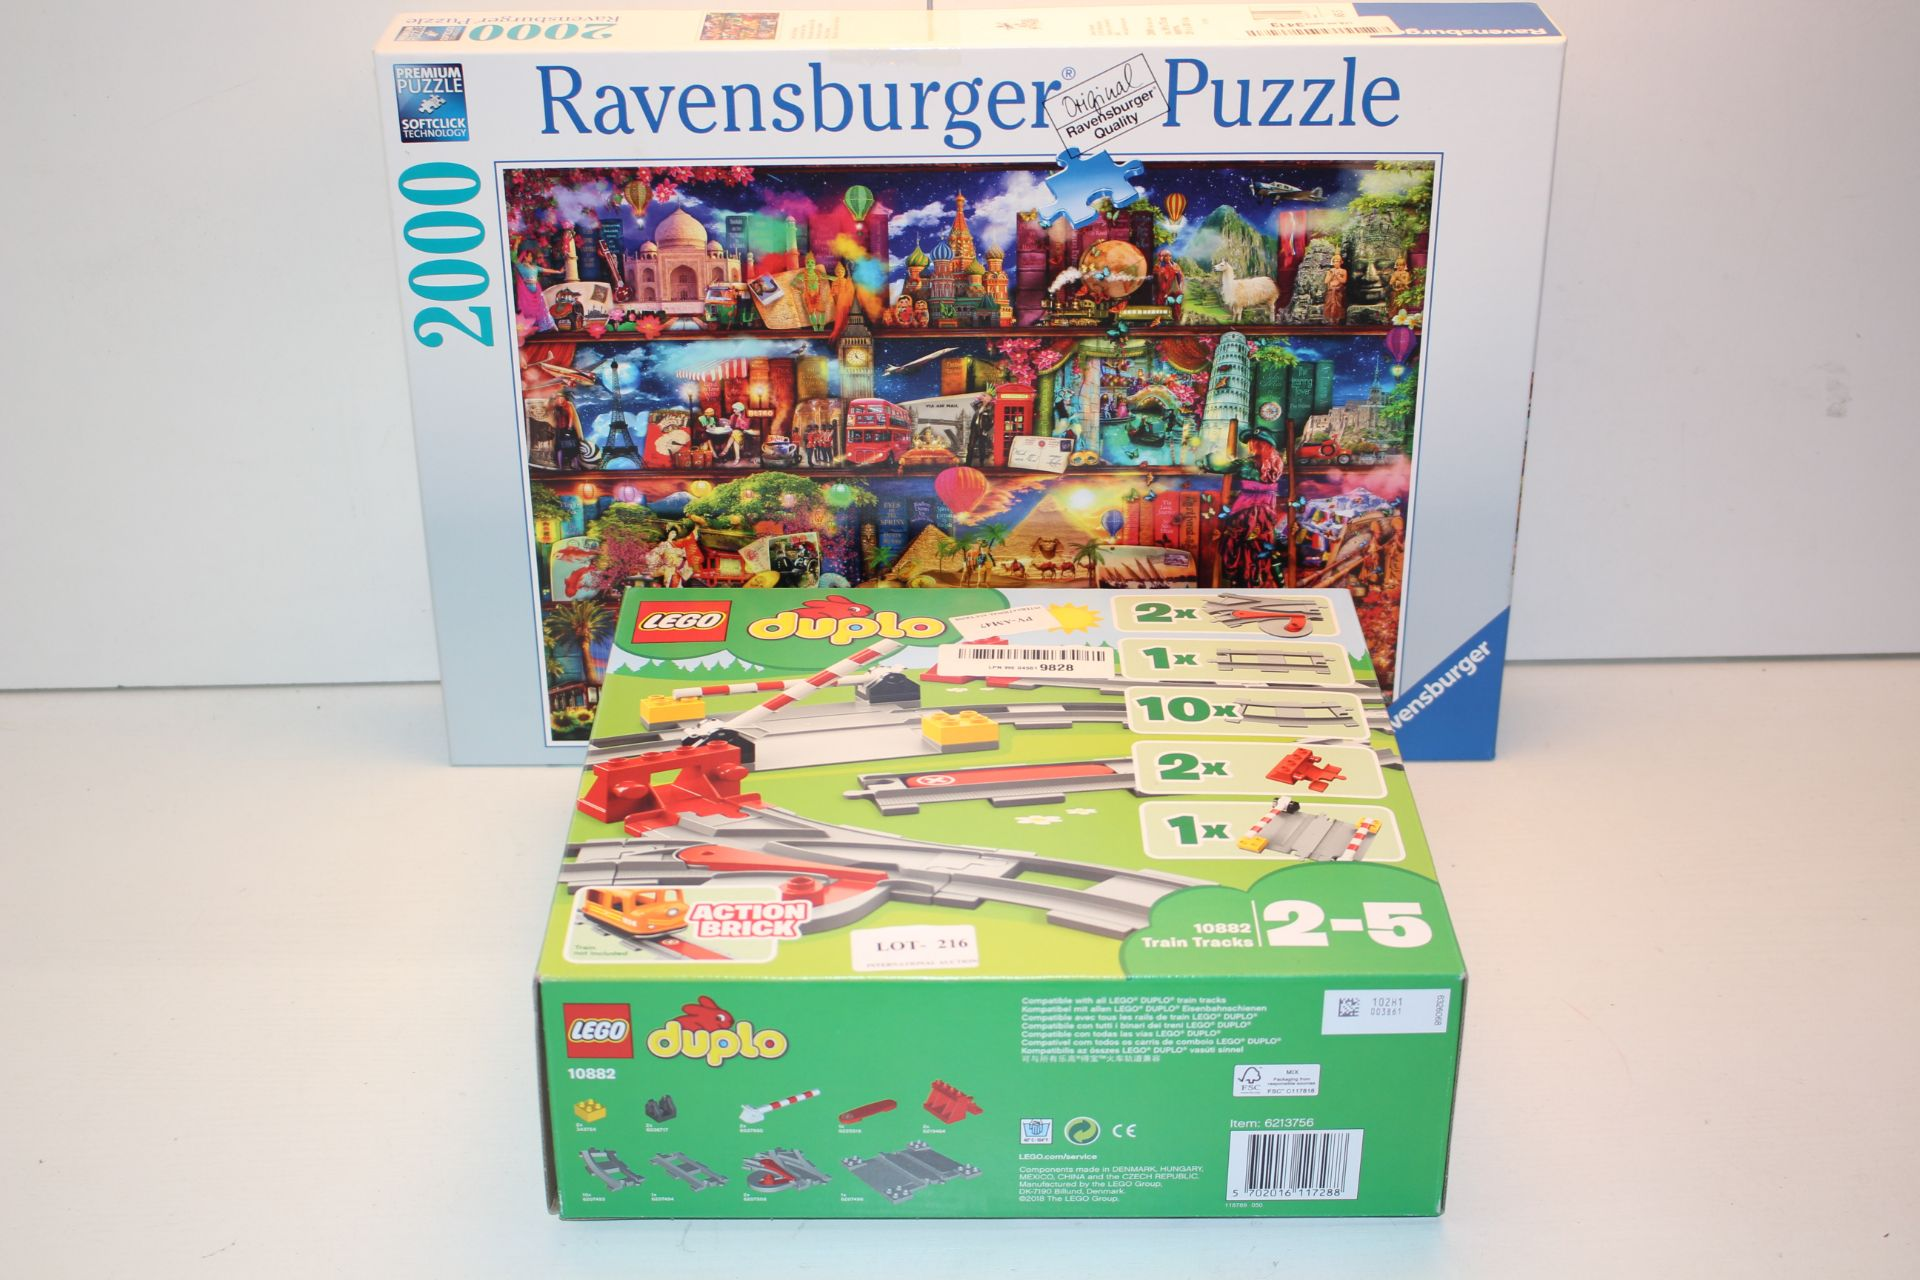 2X BOXED ASSORTED ITEMS TO INCLUDE LEGO DUPLO & RAVENSBURGER PUZZLE (IMAGE DEPICTS STOCK)Condition